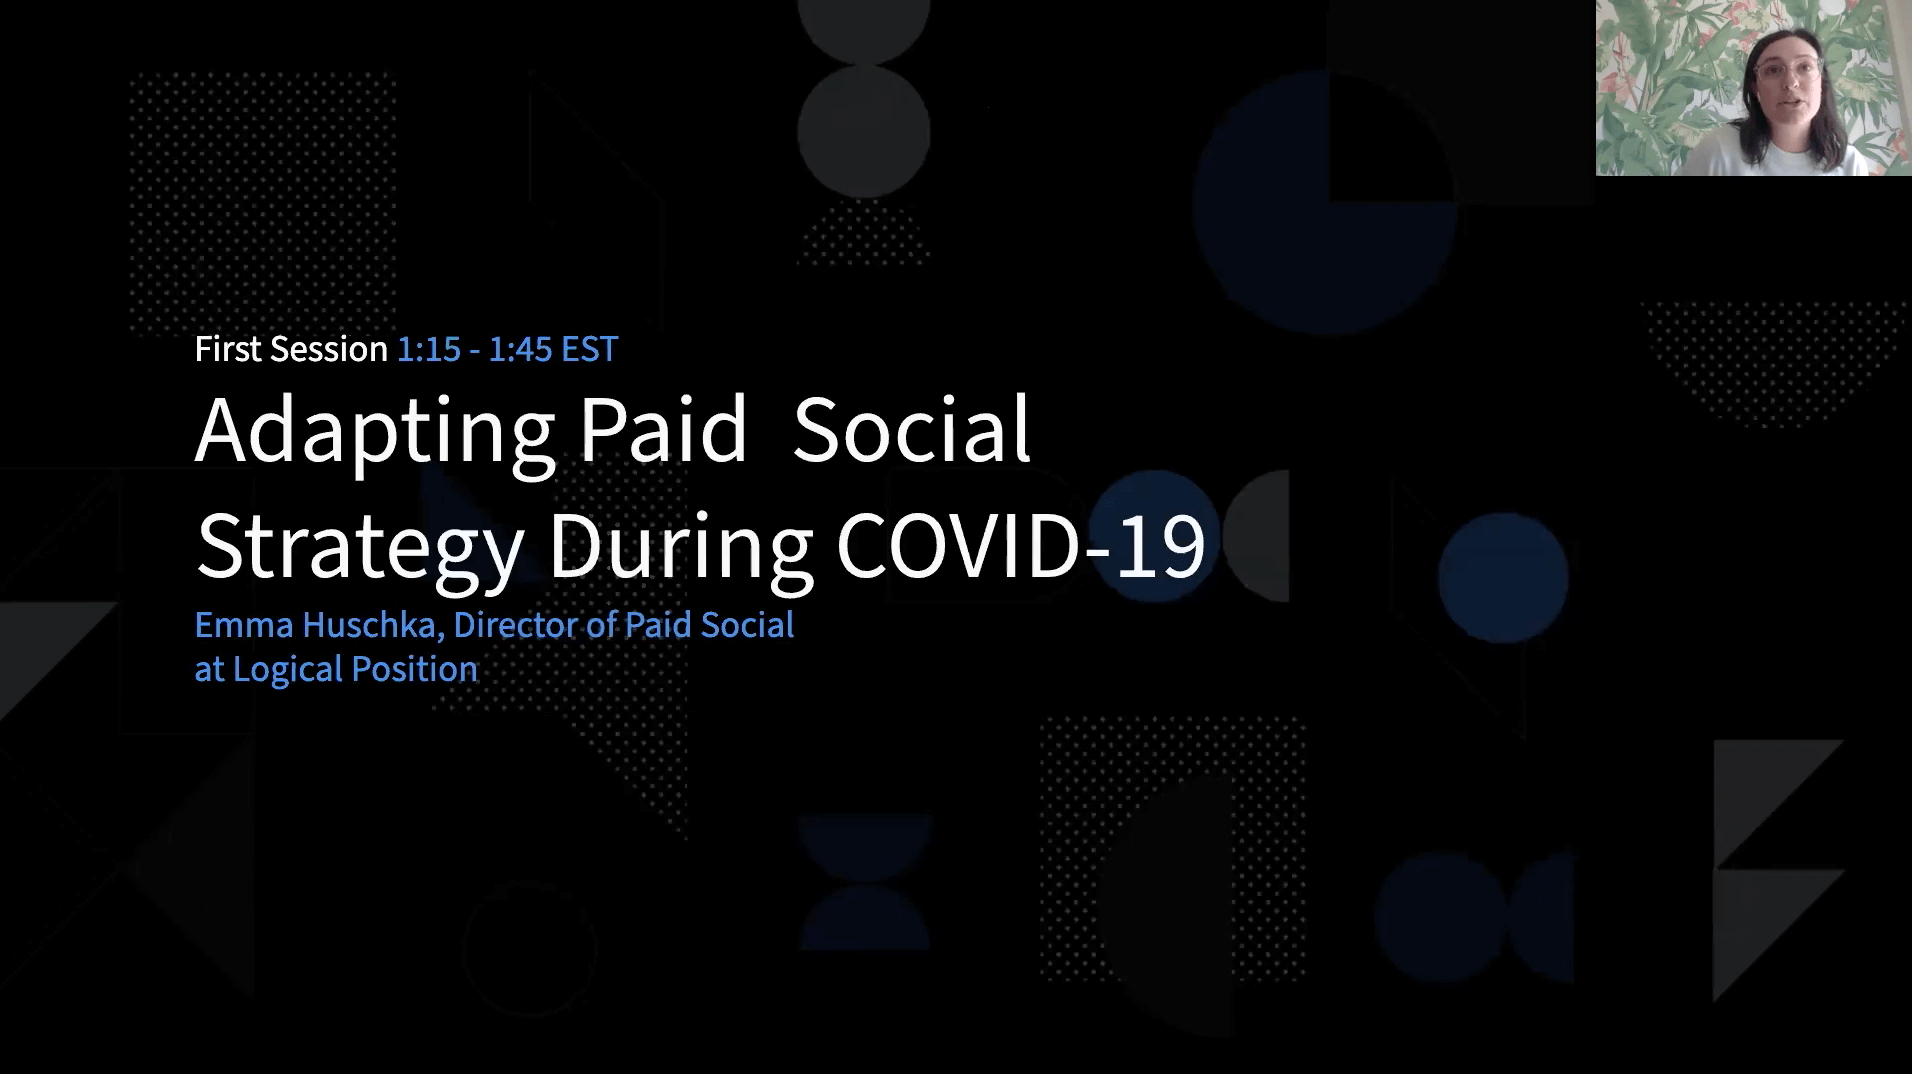 Adapting-paid-social-strategy-covid-19